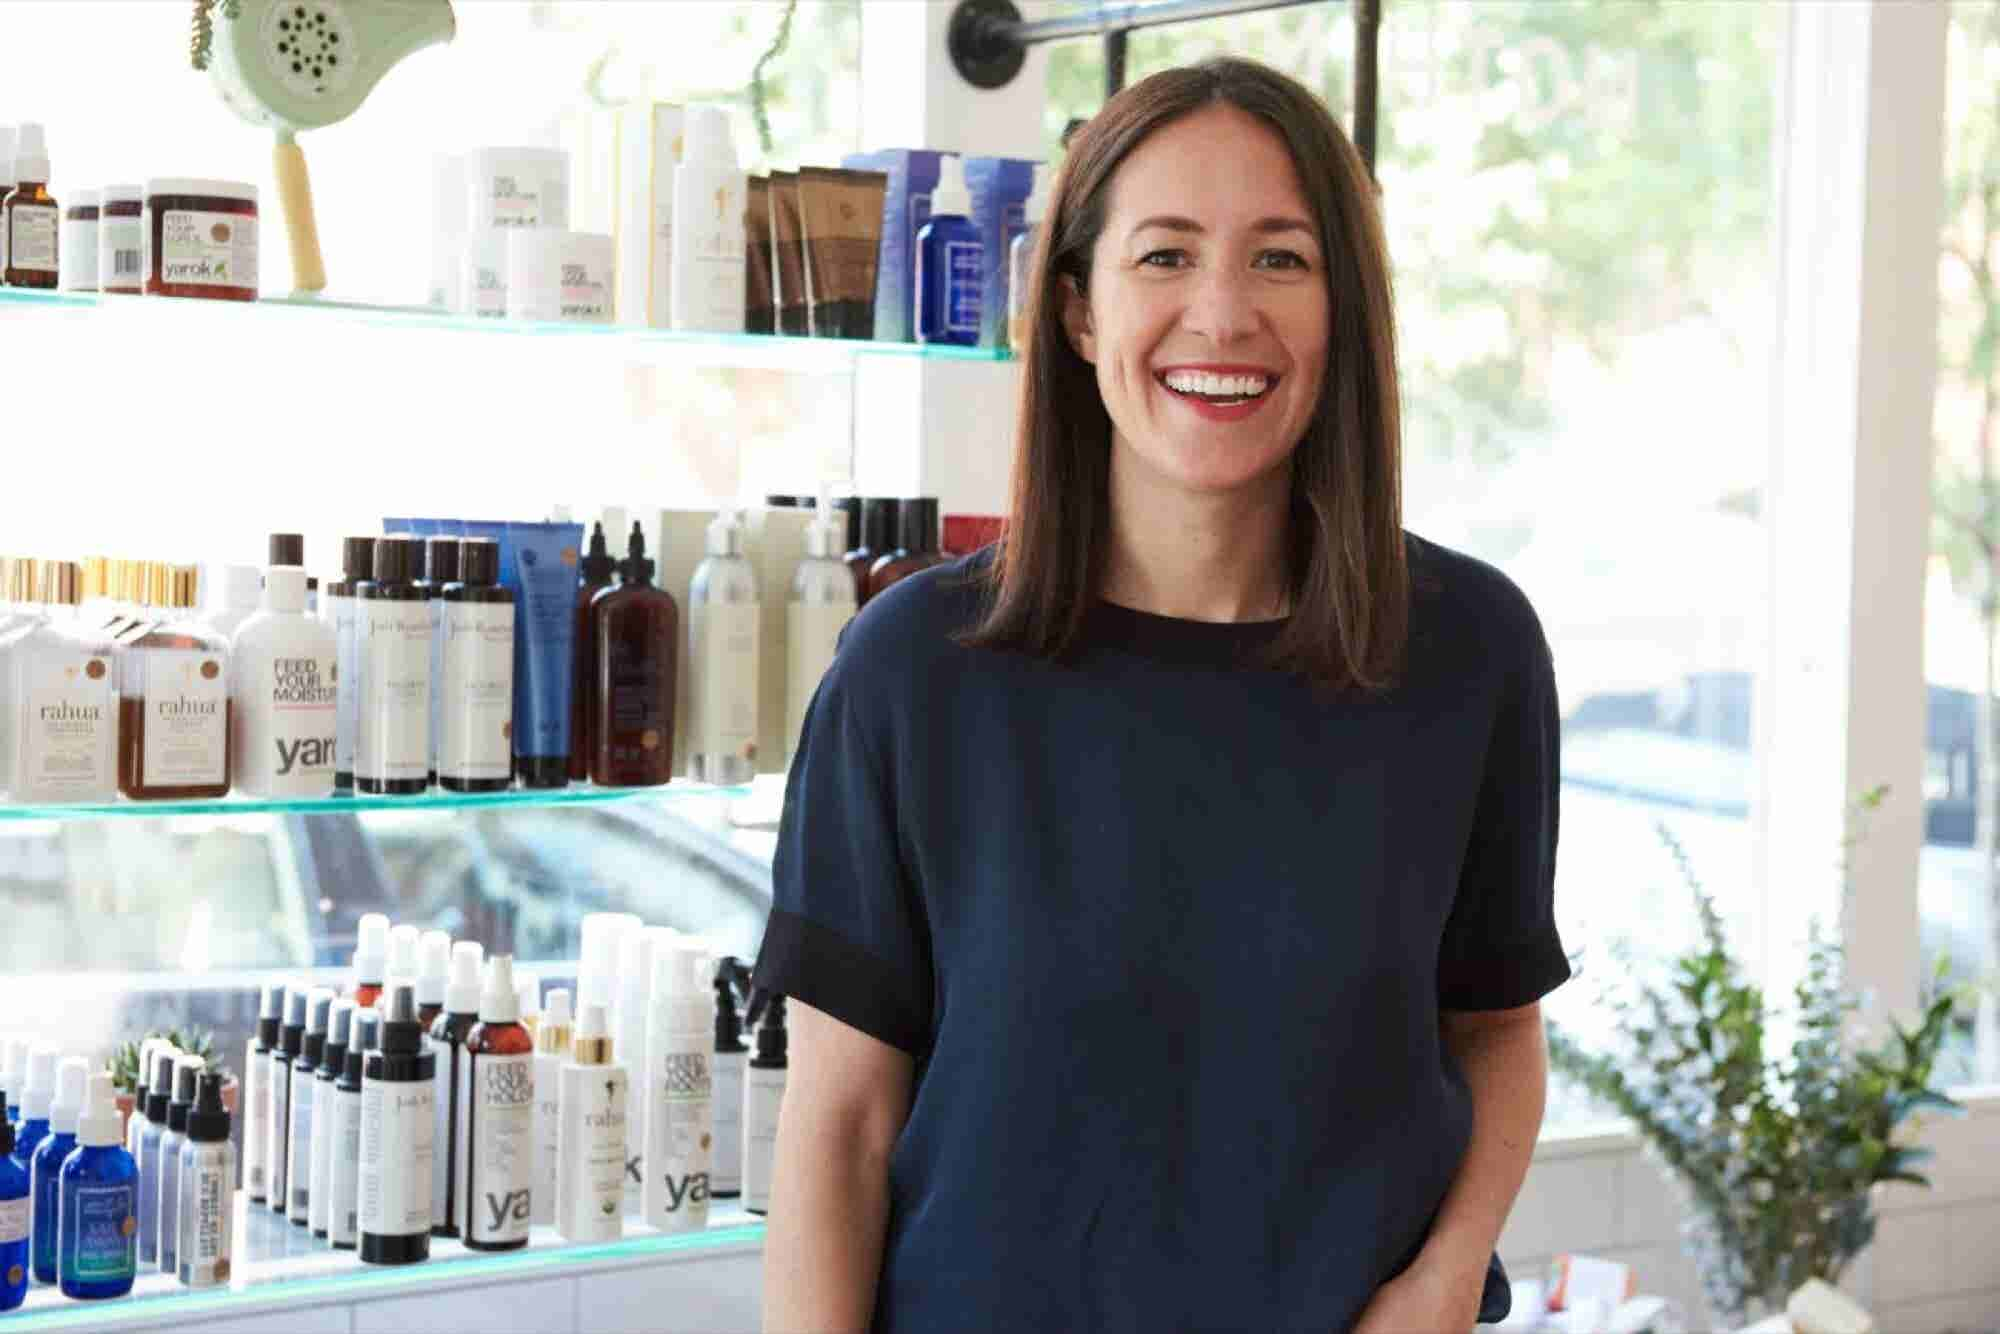 The Mentor for This Clean Beauty Retail Founder Lent Her Influence and Credibility